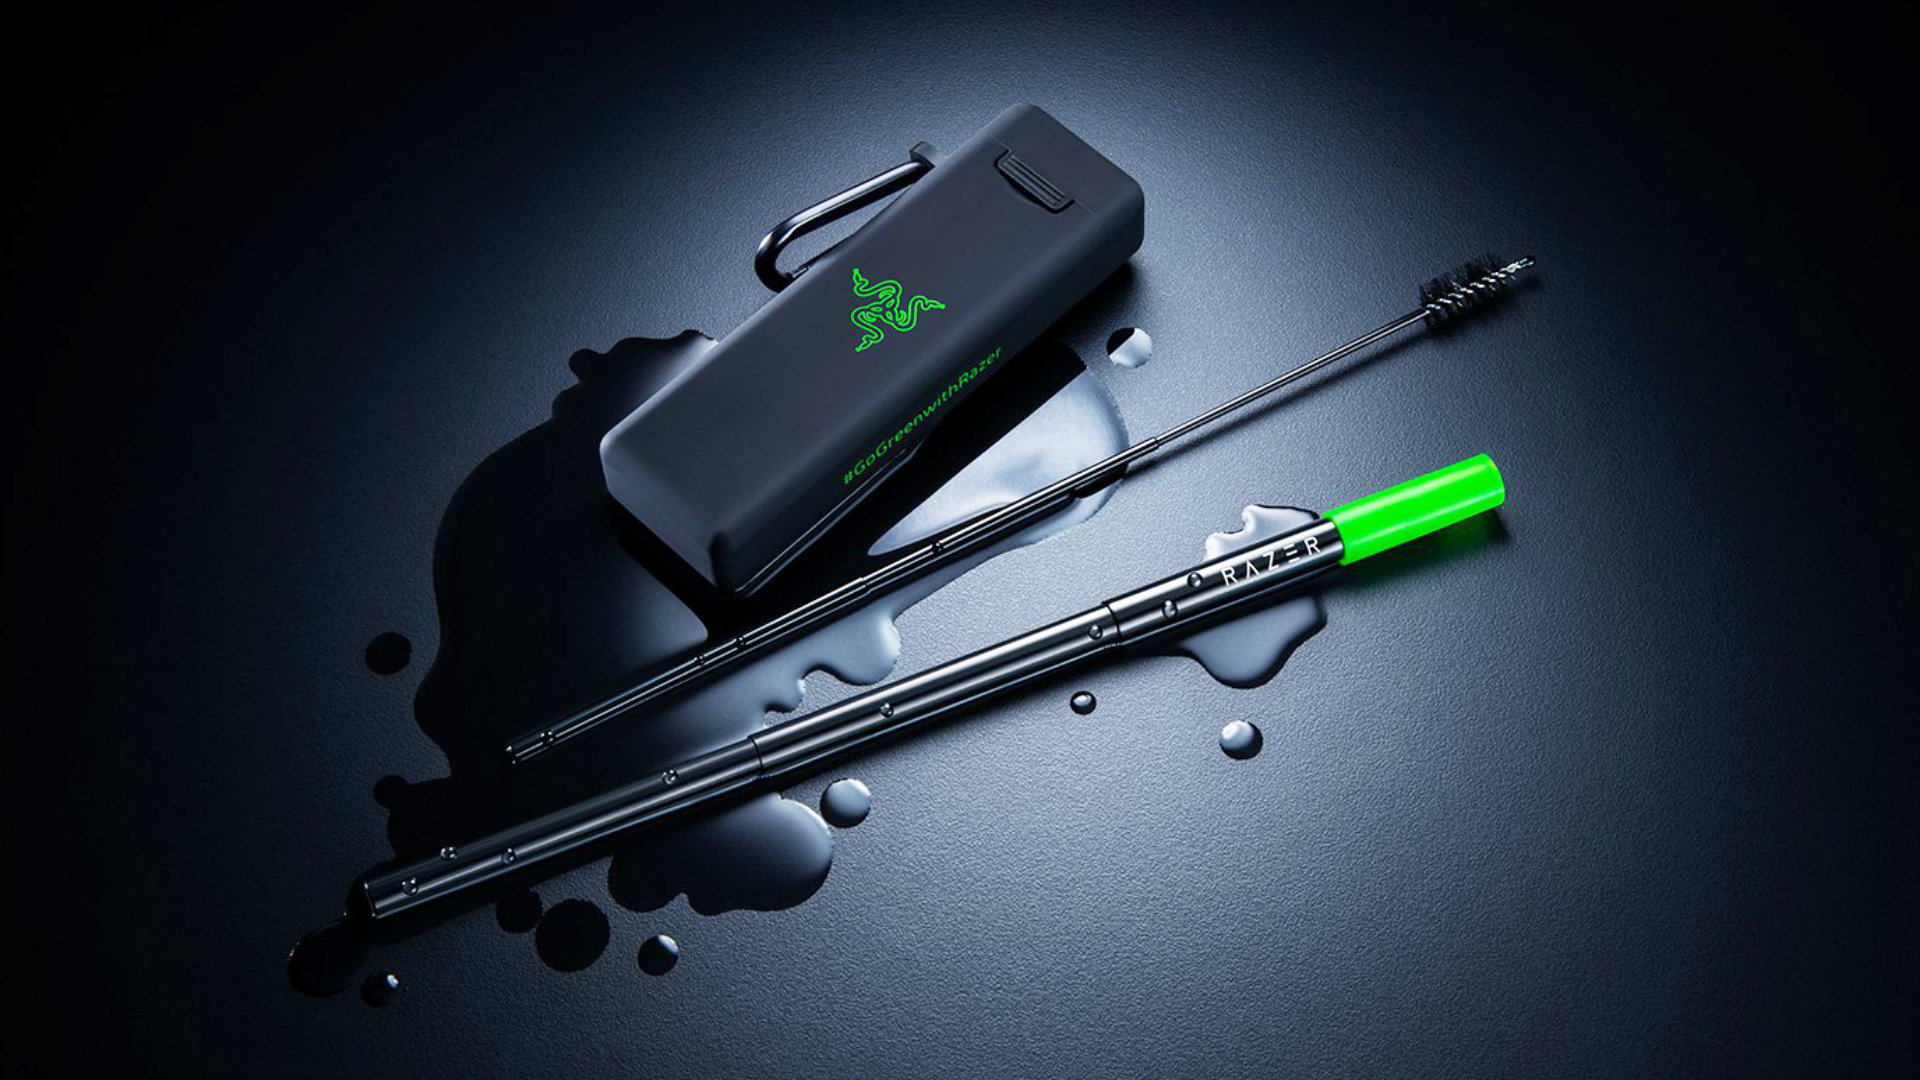 Razer's reusable straw comes with a cleaning kit, but no RGB